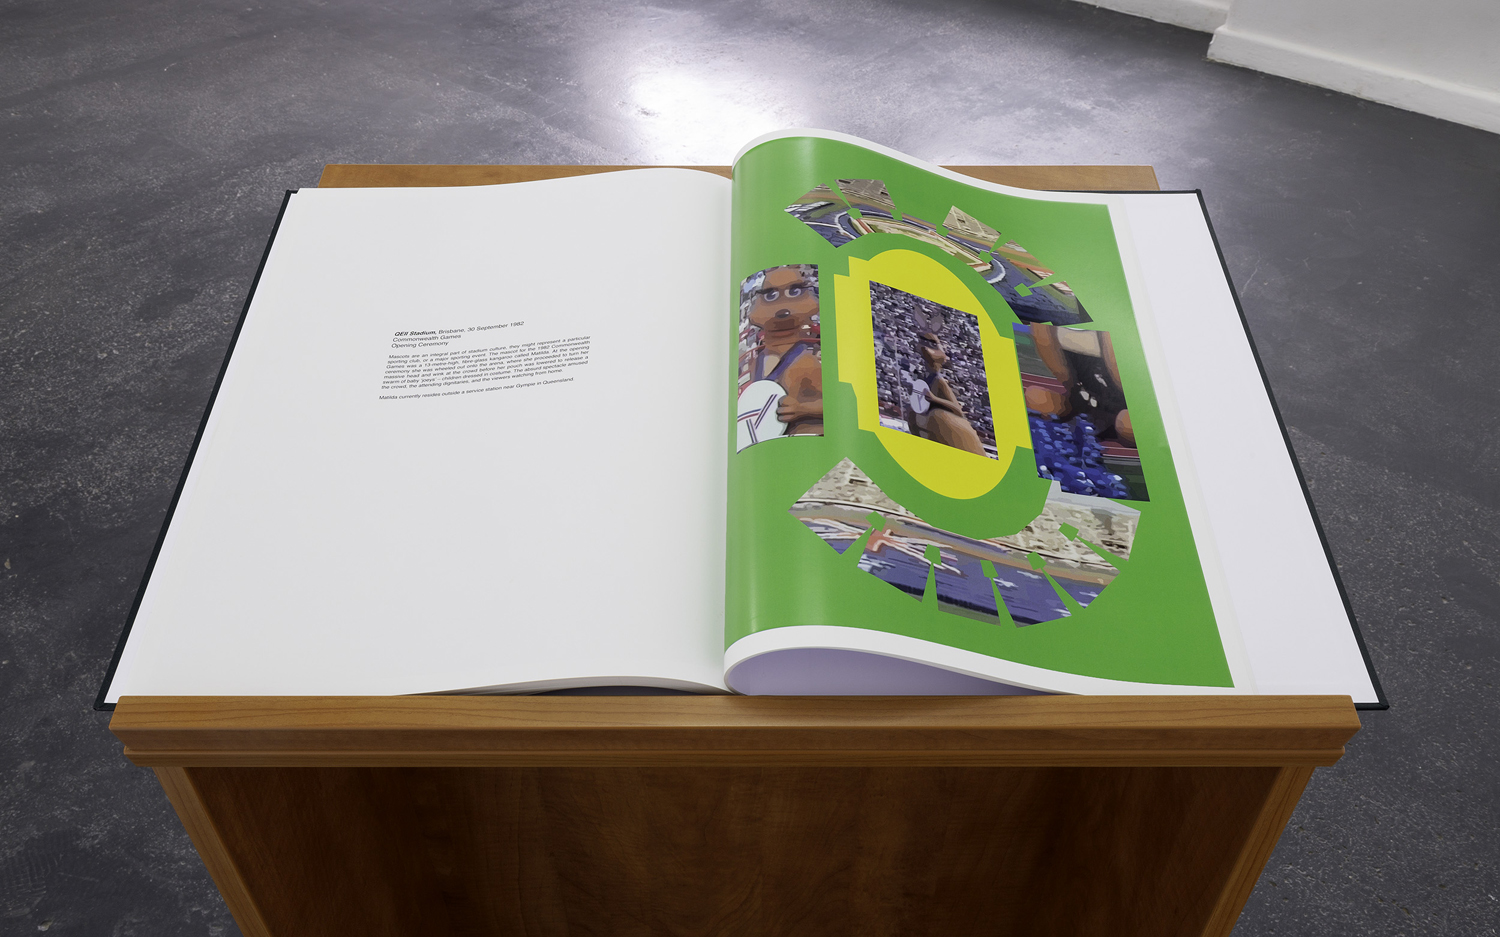 Paula Hunt,  In the stadium (2019)  2019, digital print book, installation view  The medium is public , BLINDSIDE 2019 | Courtesy of the artist. Photograph: Christian Capurro